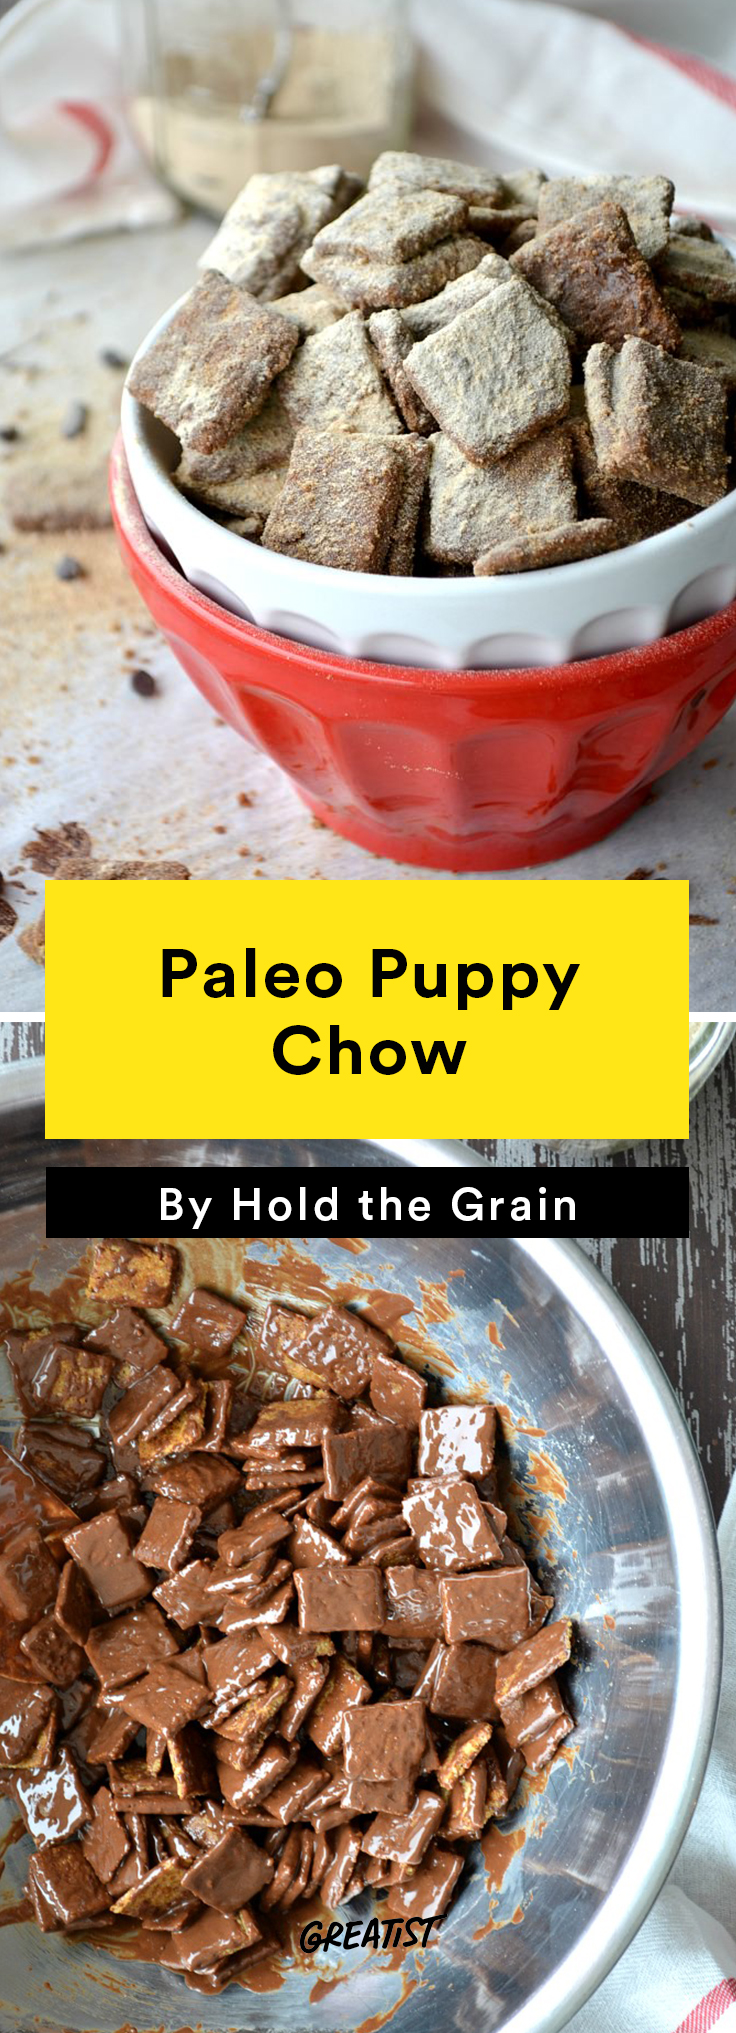 Puppy Chow Recipes: 5 Healthier Versions of Your Favorite Childhood Snack recommendations